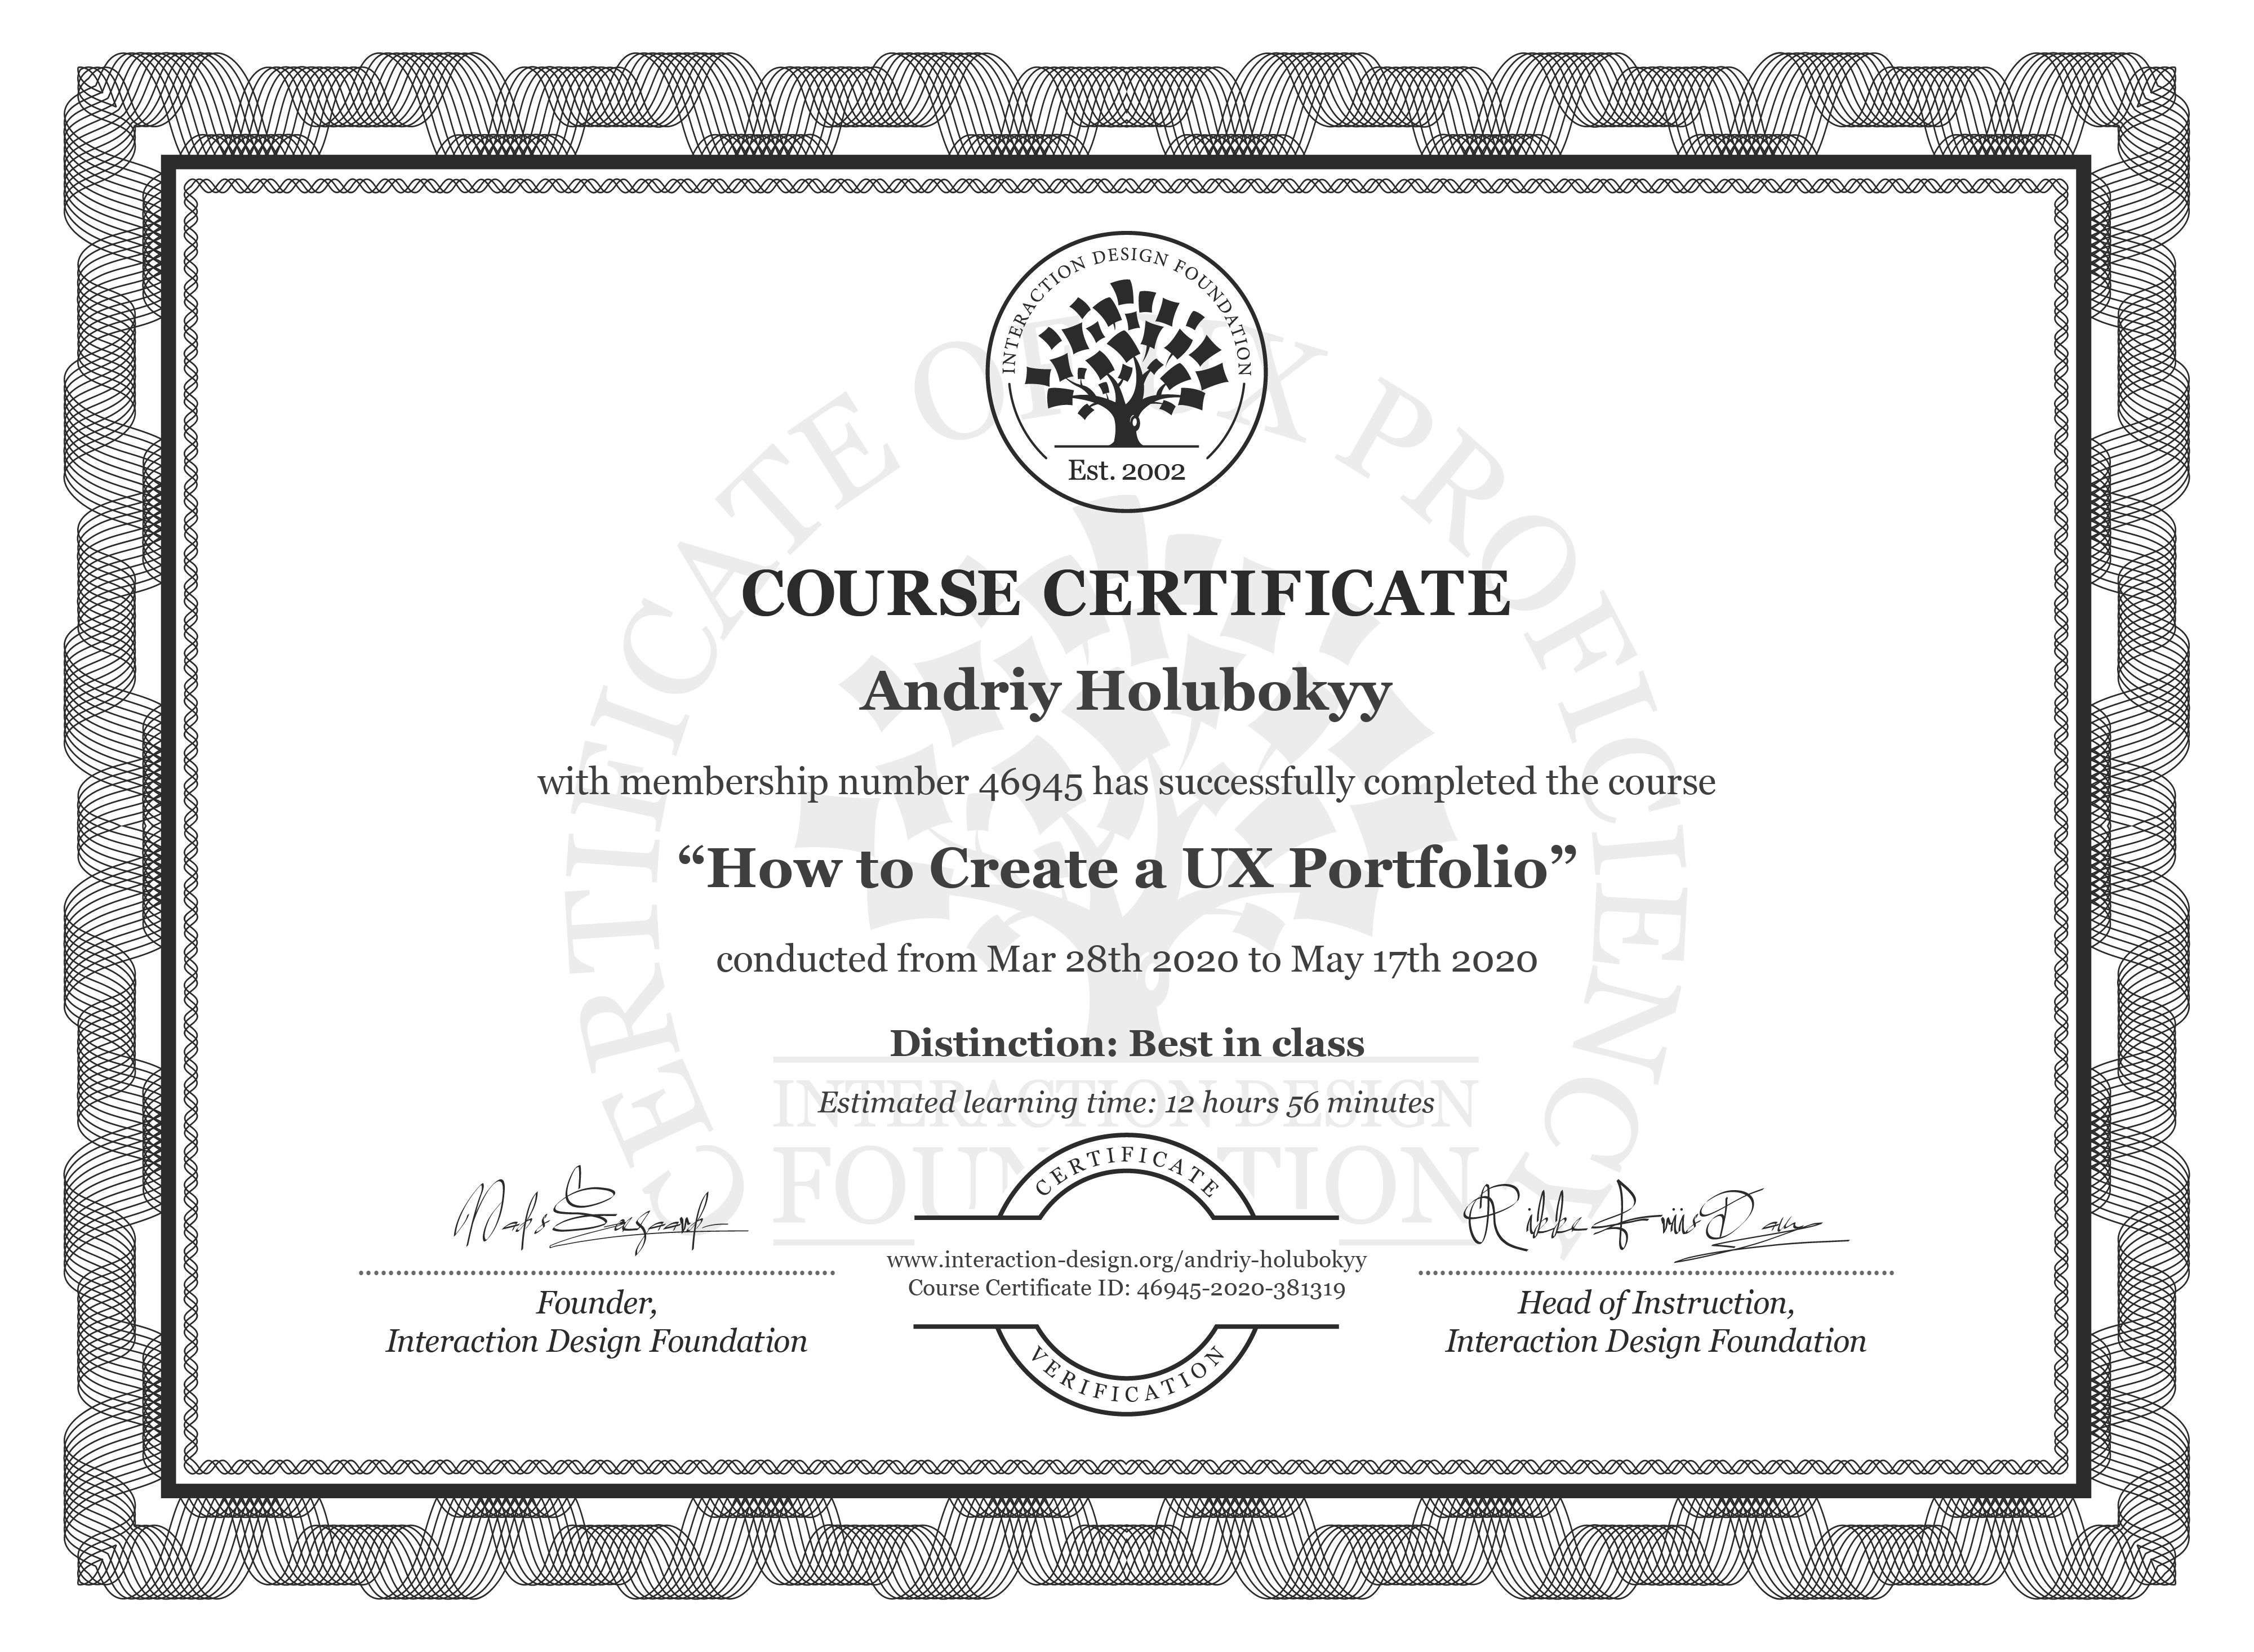 Andriy Holubokyy's Course Certificate: How to Create a UX Portfolio